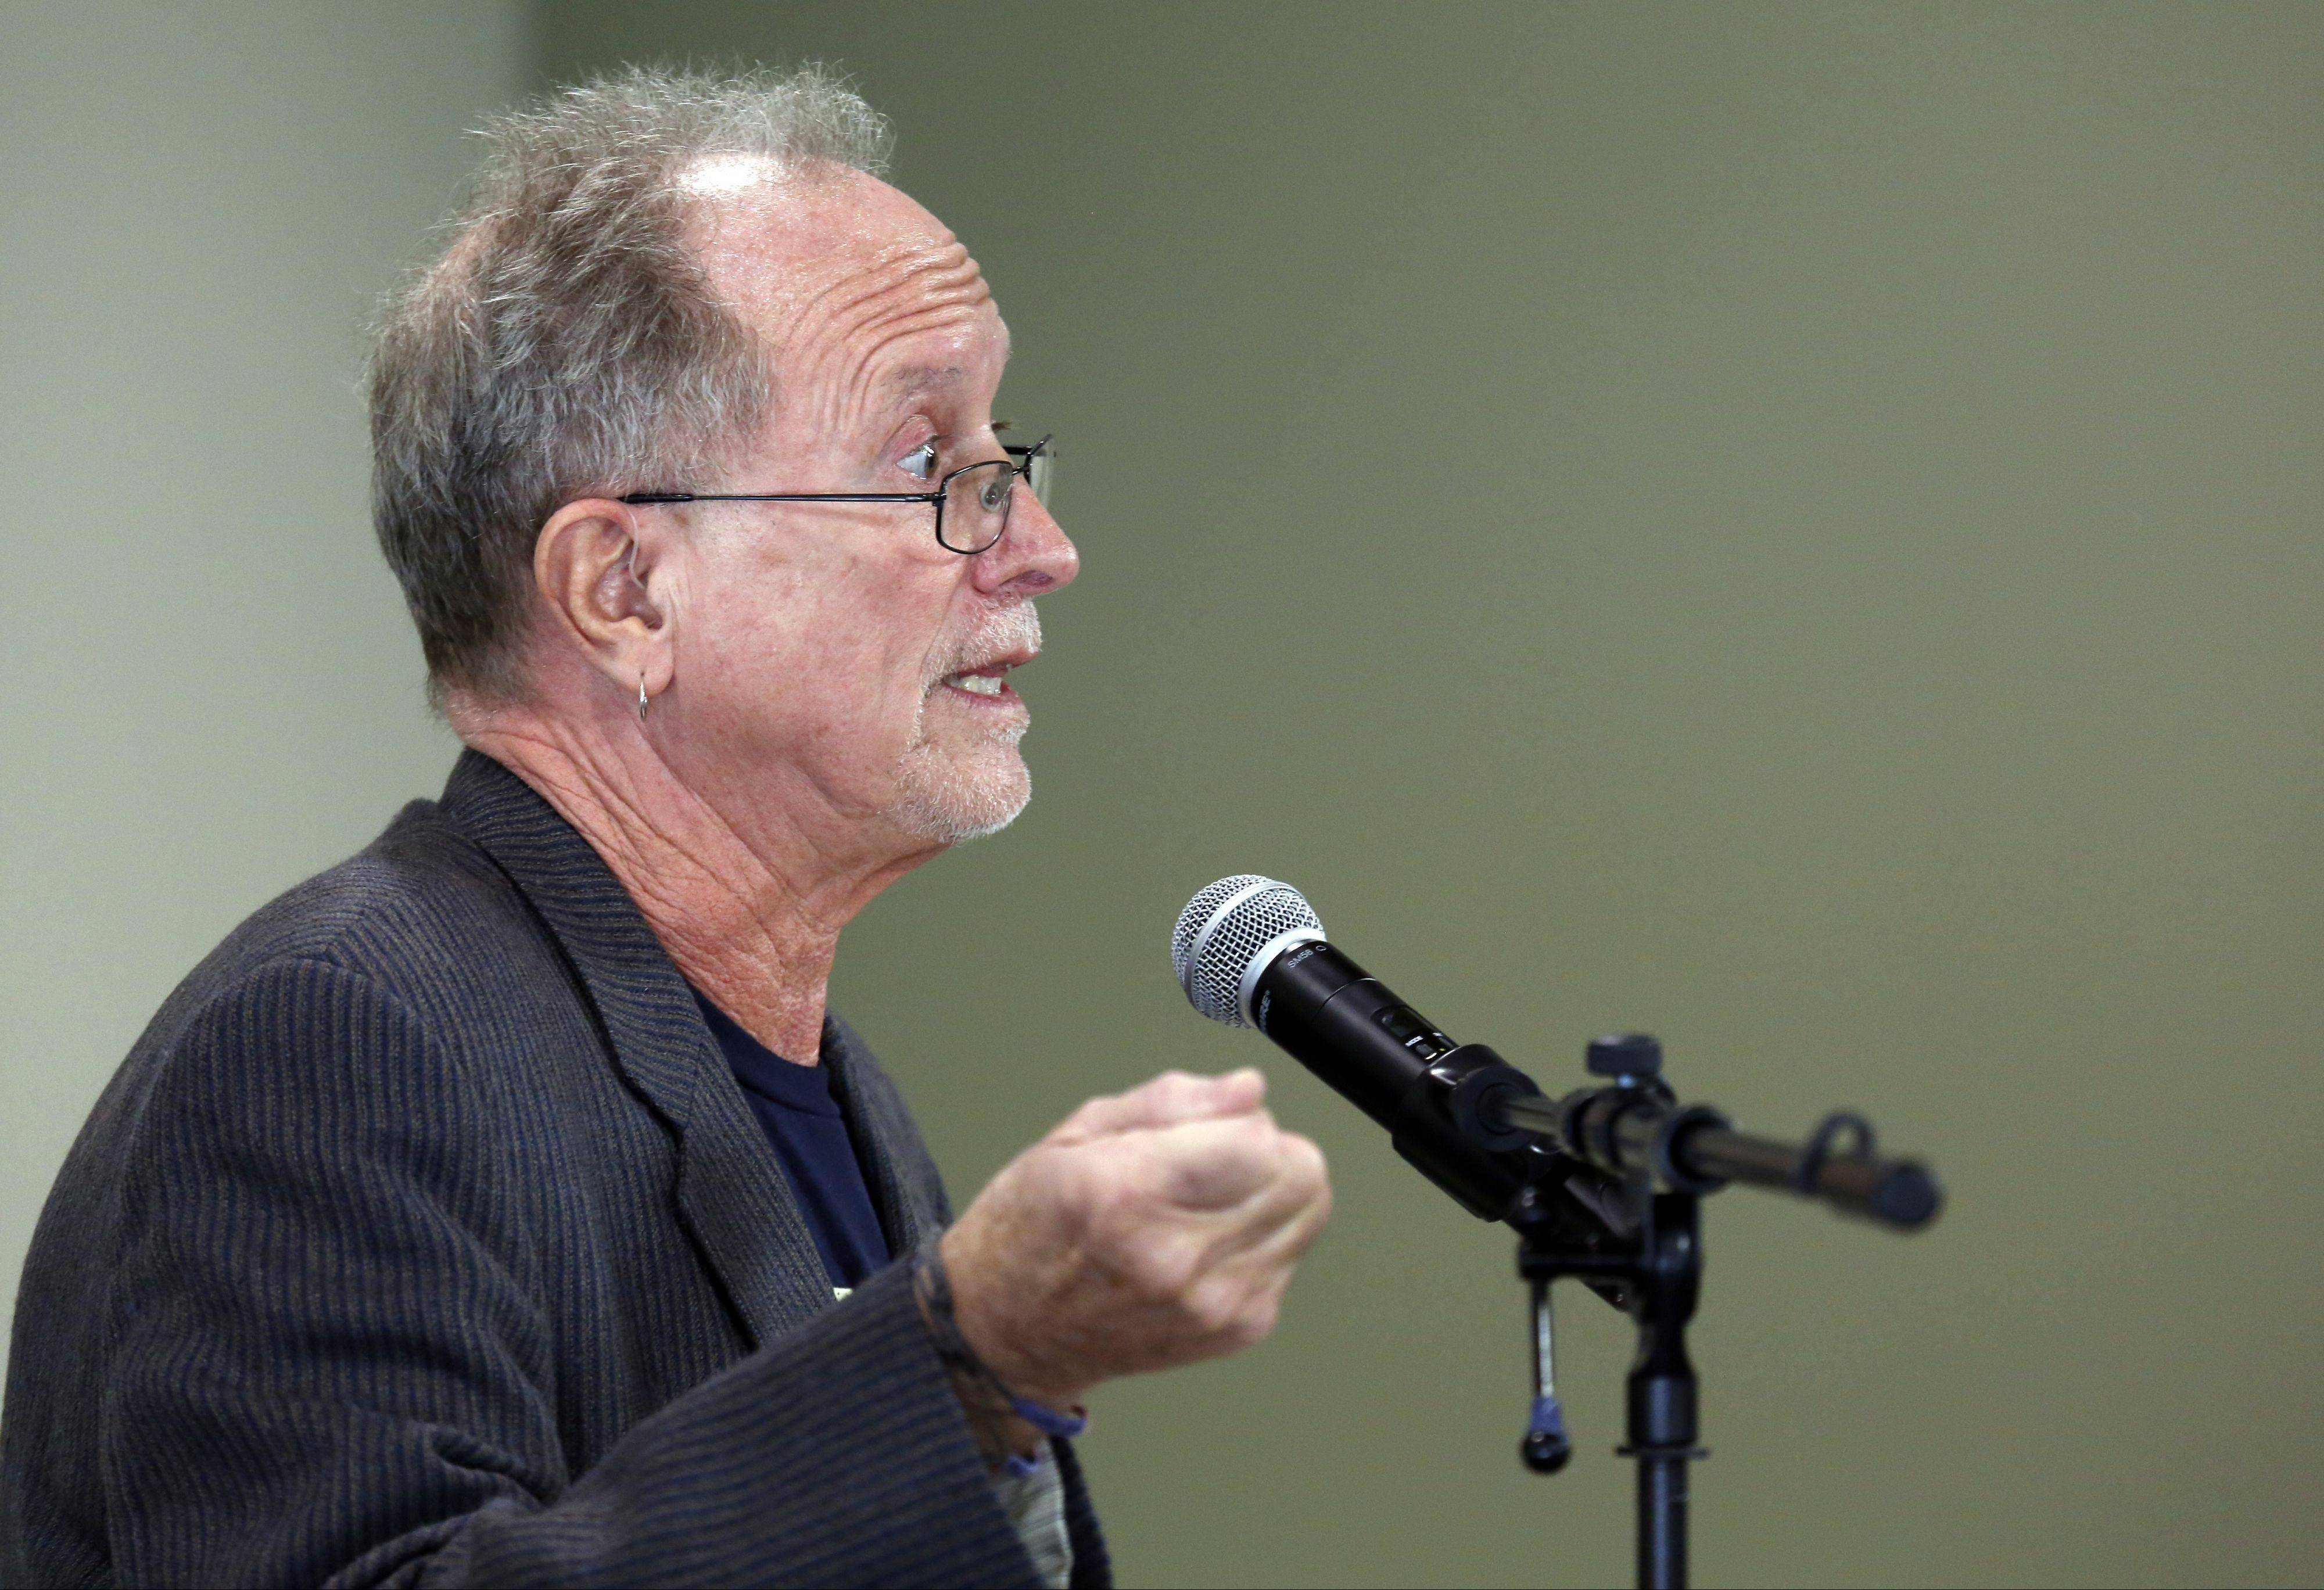 William Ayers, controversial former professor and one-time leader in the �60s and �70s protest movement, appeared at Elgin Community College Thursday.